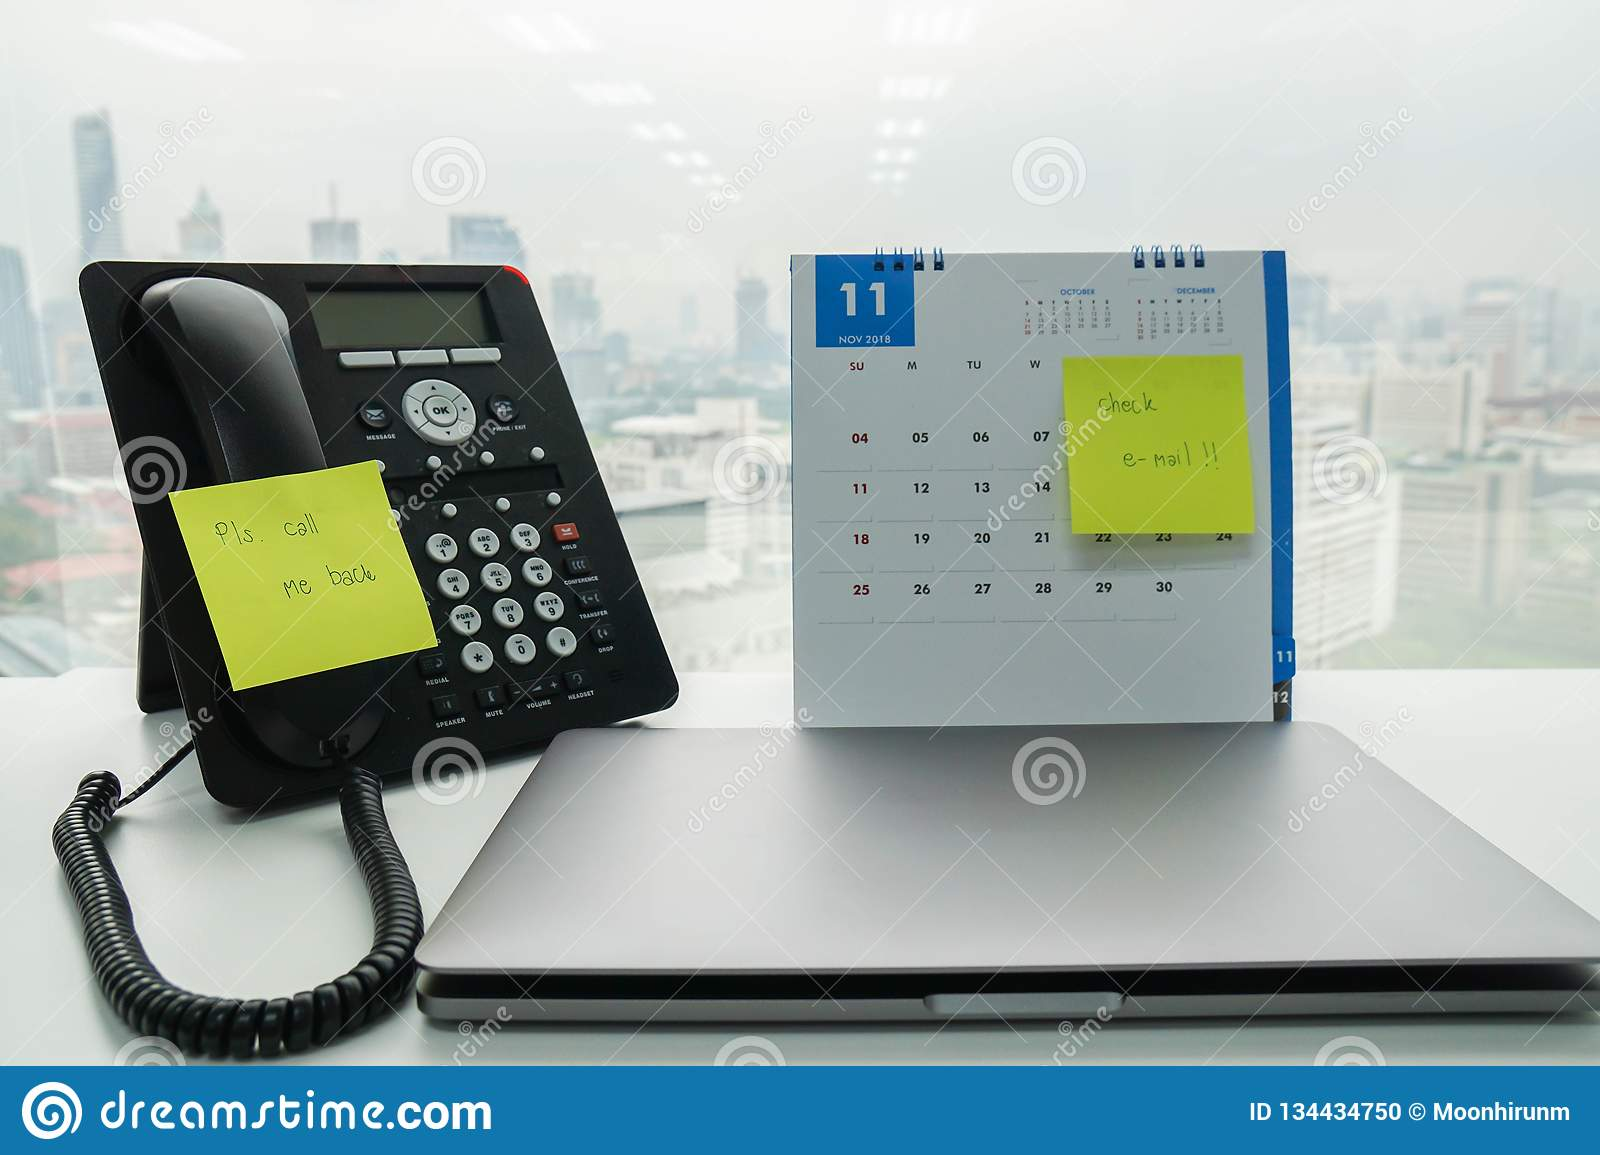 Stick note of call back message and check e-mail on IP phone and November calendar for employee reminder with computer